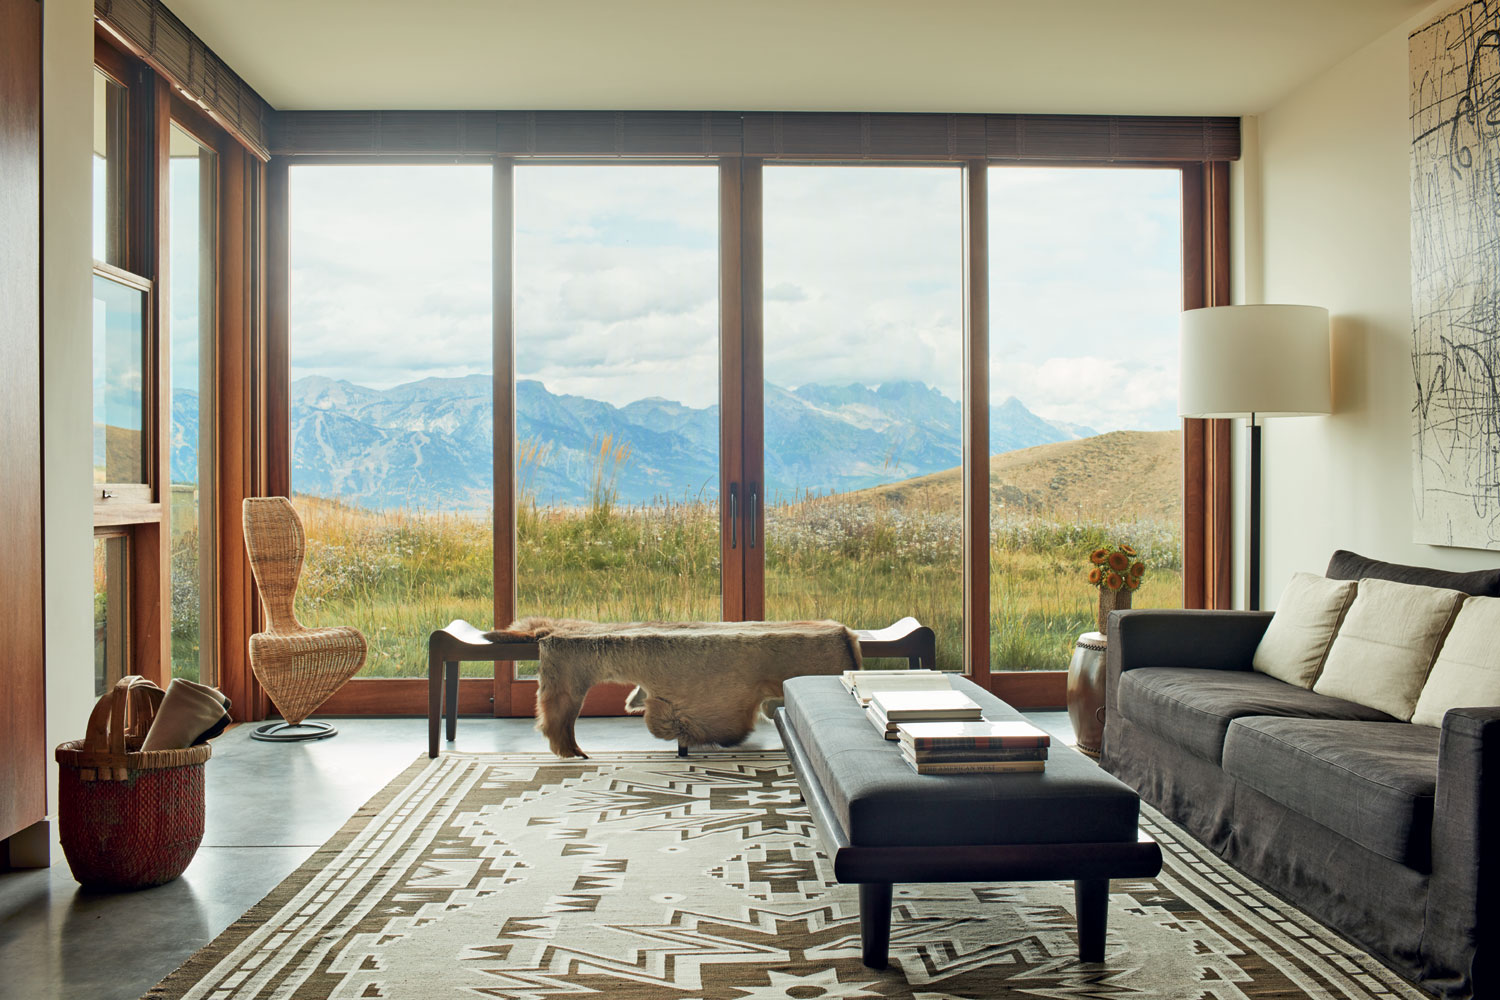 Throughout the 6,489-square-foot home, vast windows reveal the mountain panorama beyond, while automated fabric and bespoke wooden blinds introduce cozy privacy at the touch of a button.